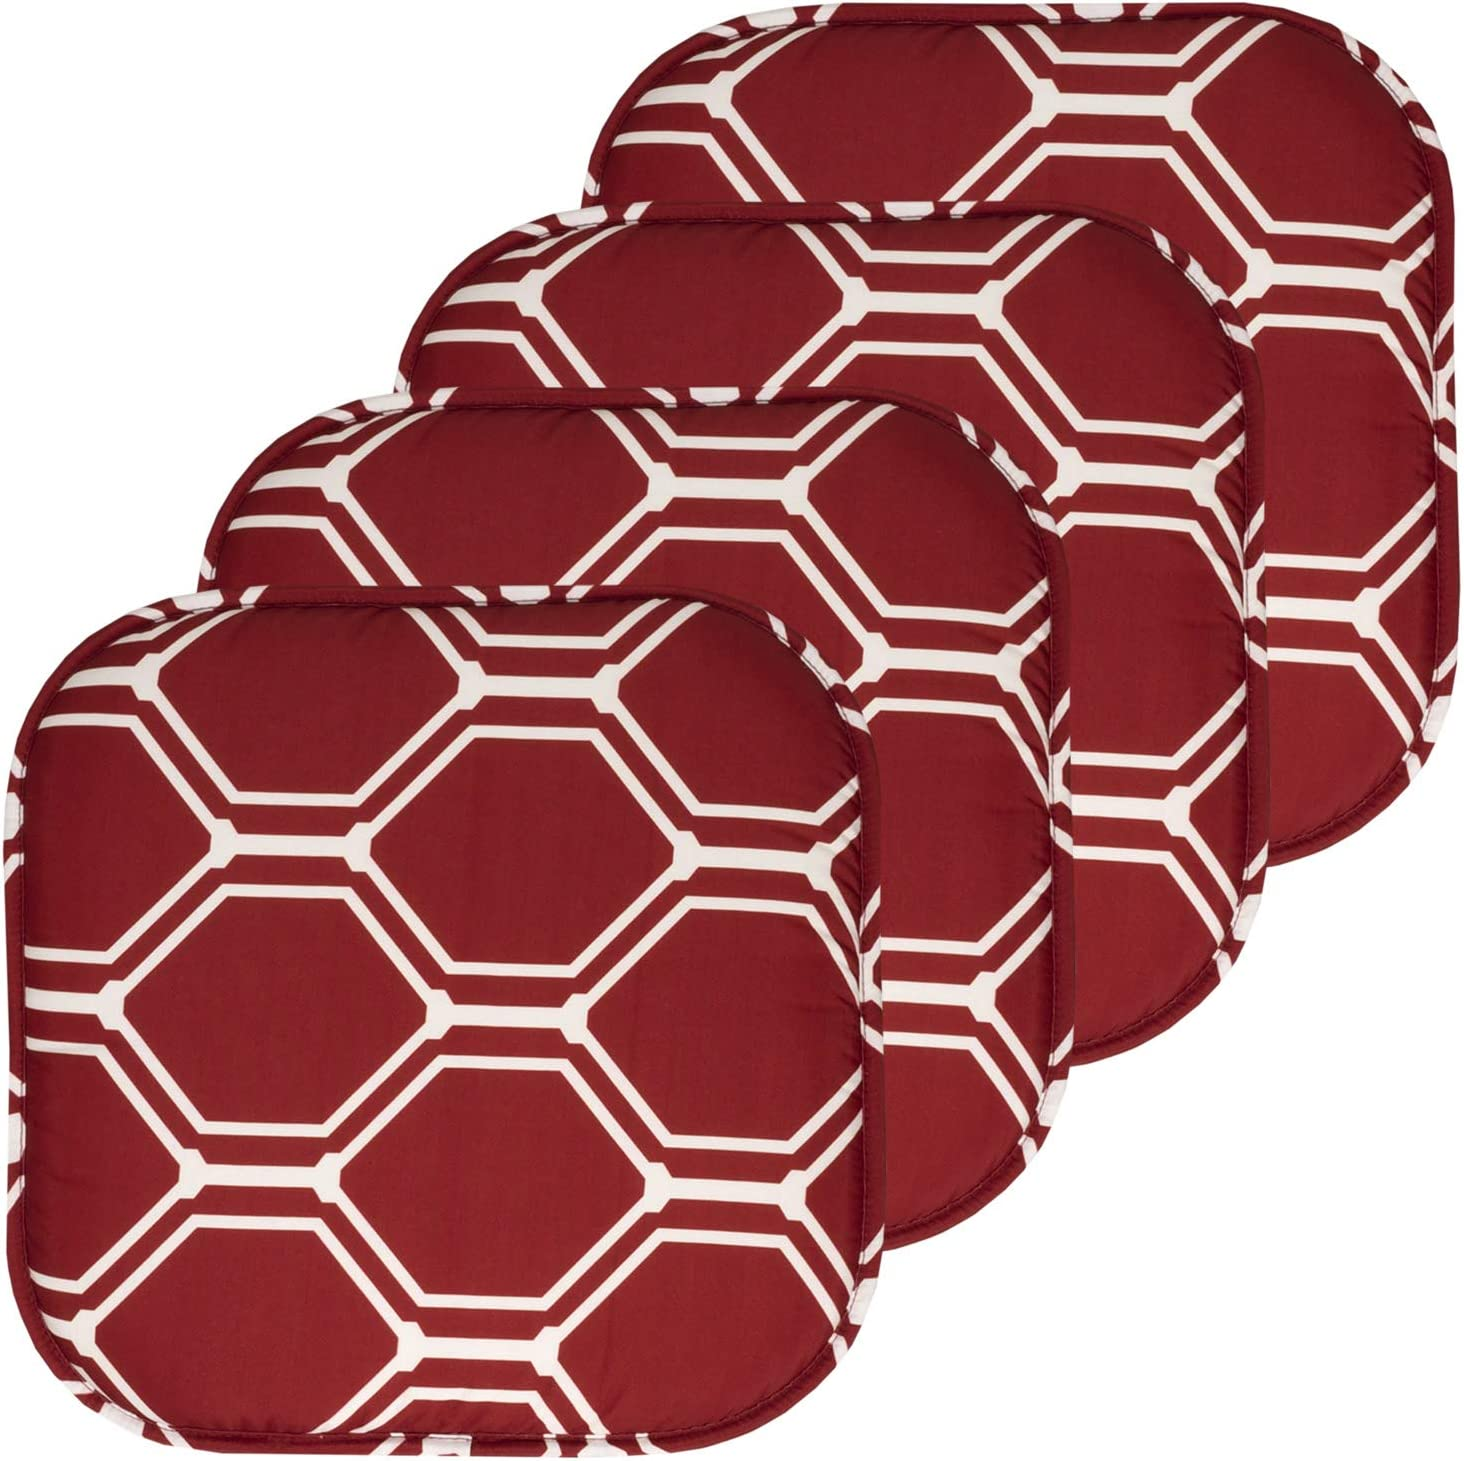 6 Pack Mirage Wine//White Sweet Home Collection Chair Cushion Memory Foam Pads Honeycomb Pattern Slip Non Skid Rubber Back Rounded Square 16 x 16 Seat Cover